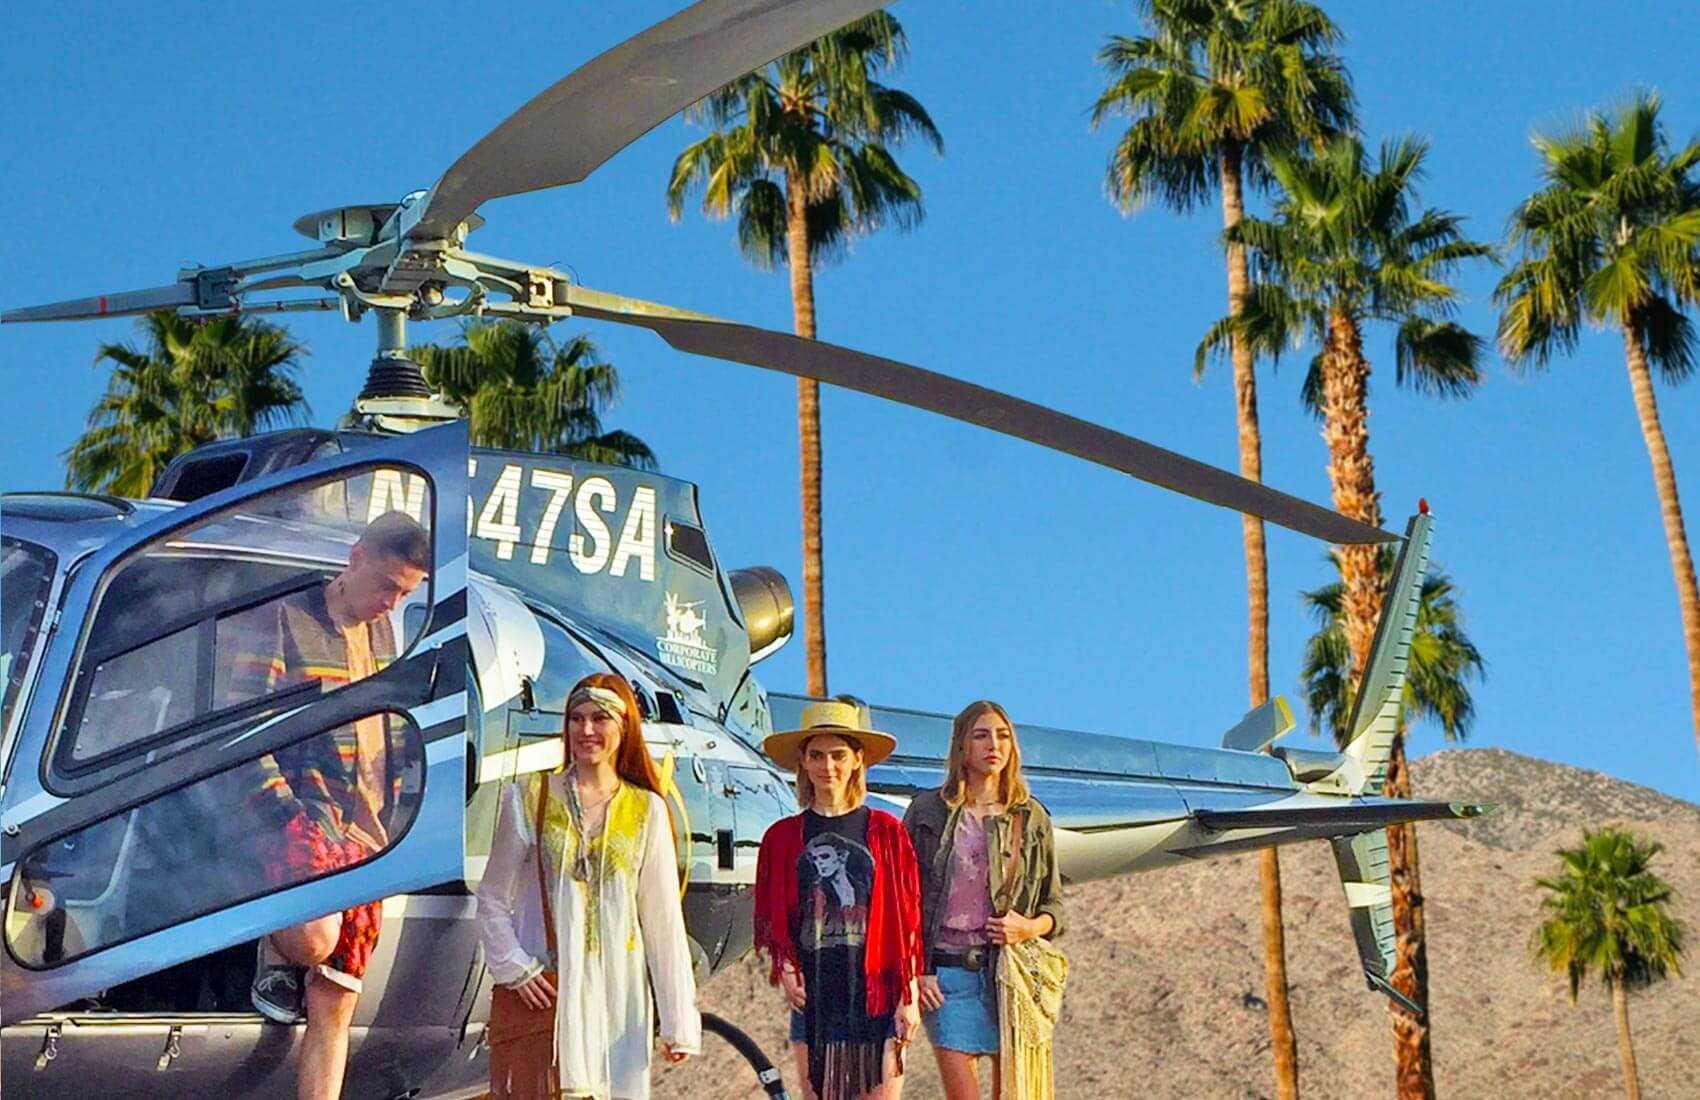 Helicopter charter to the Coachella Valley area / Palm Springs